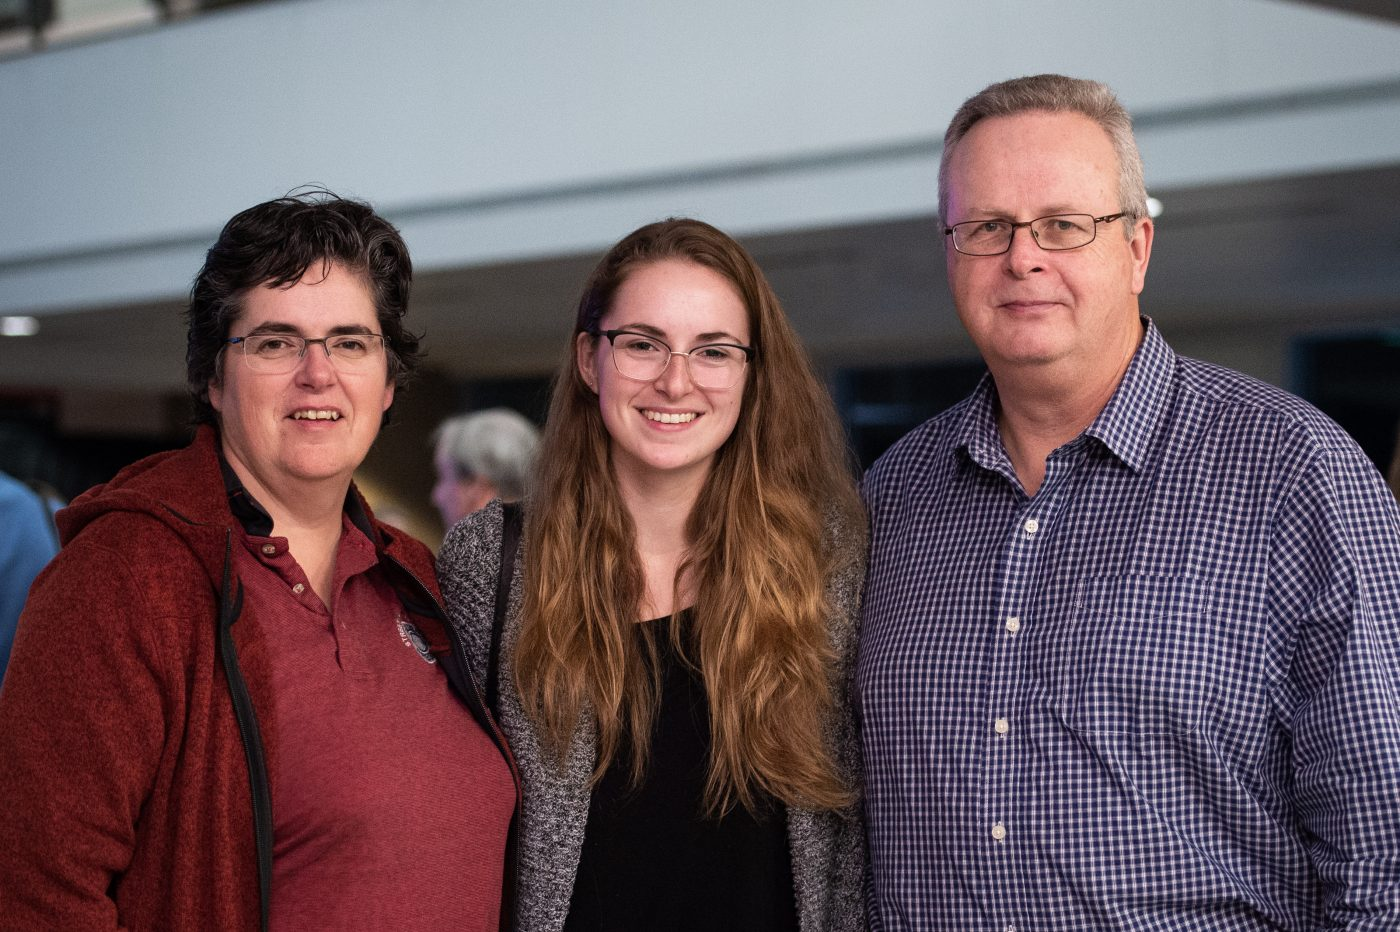 Lindsey MacMillan poses with her parents at the reception.